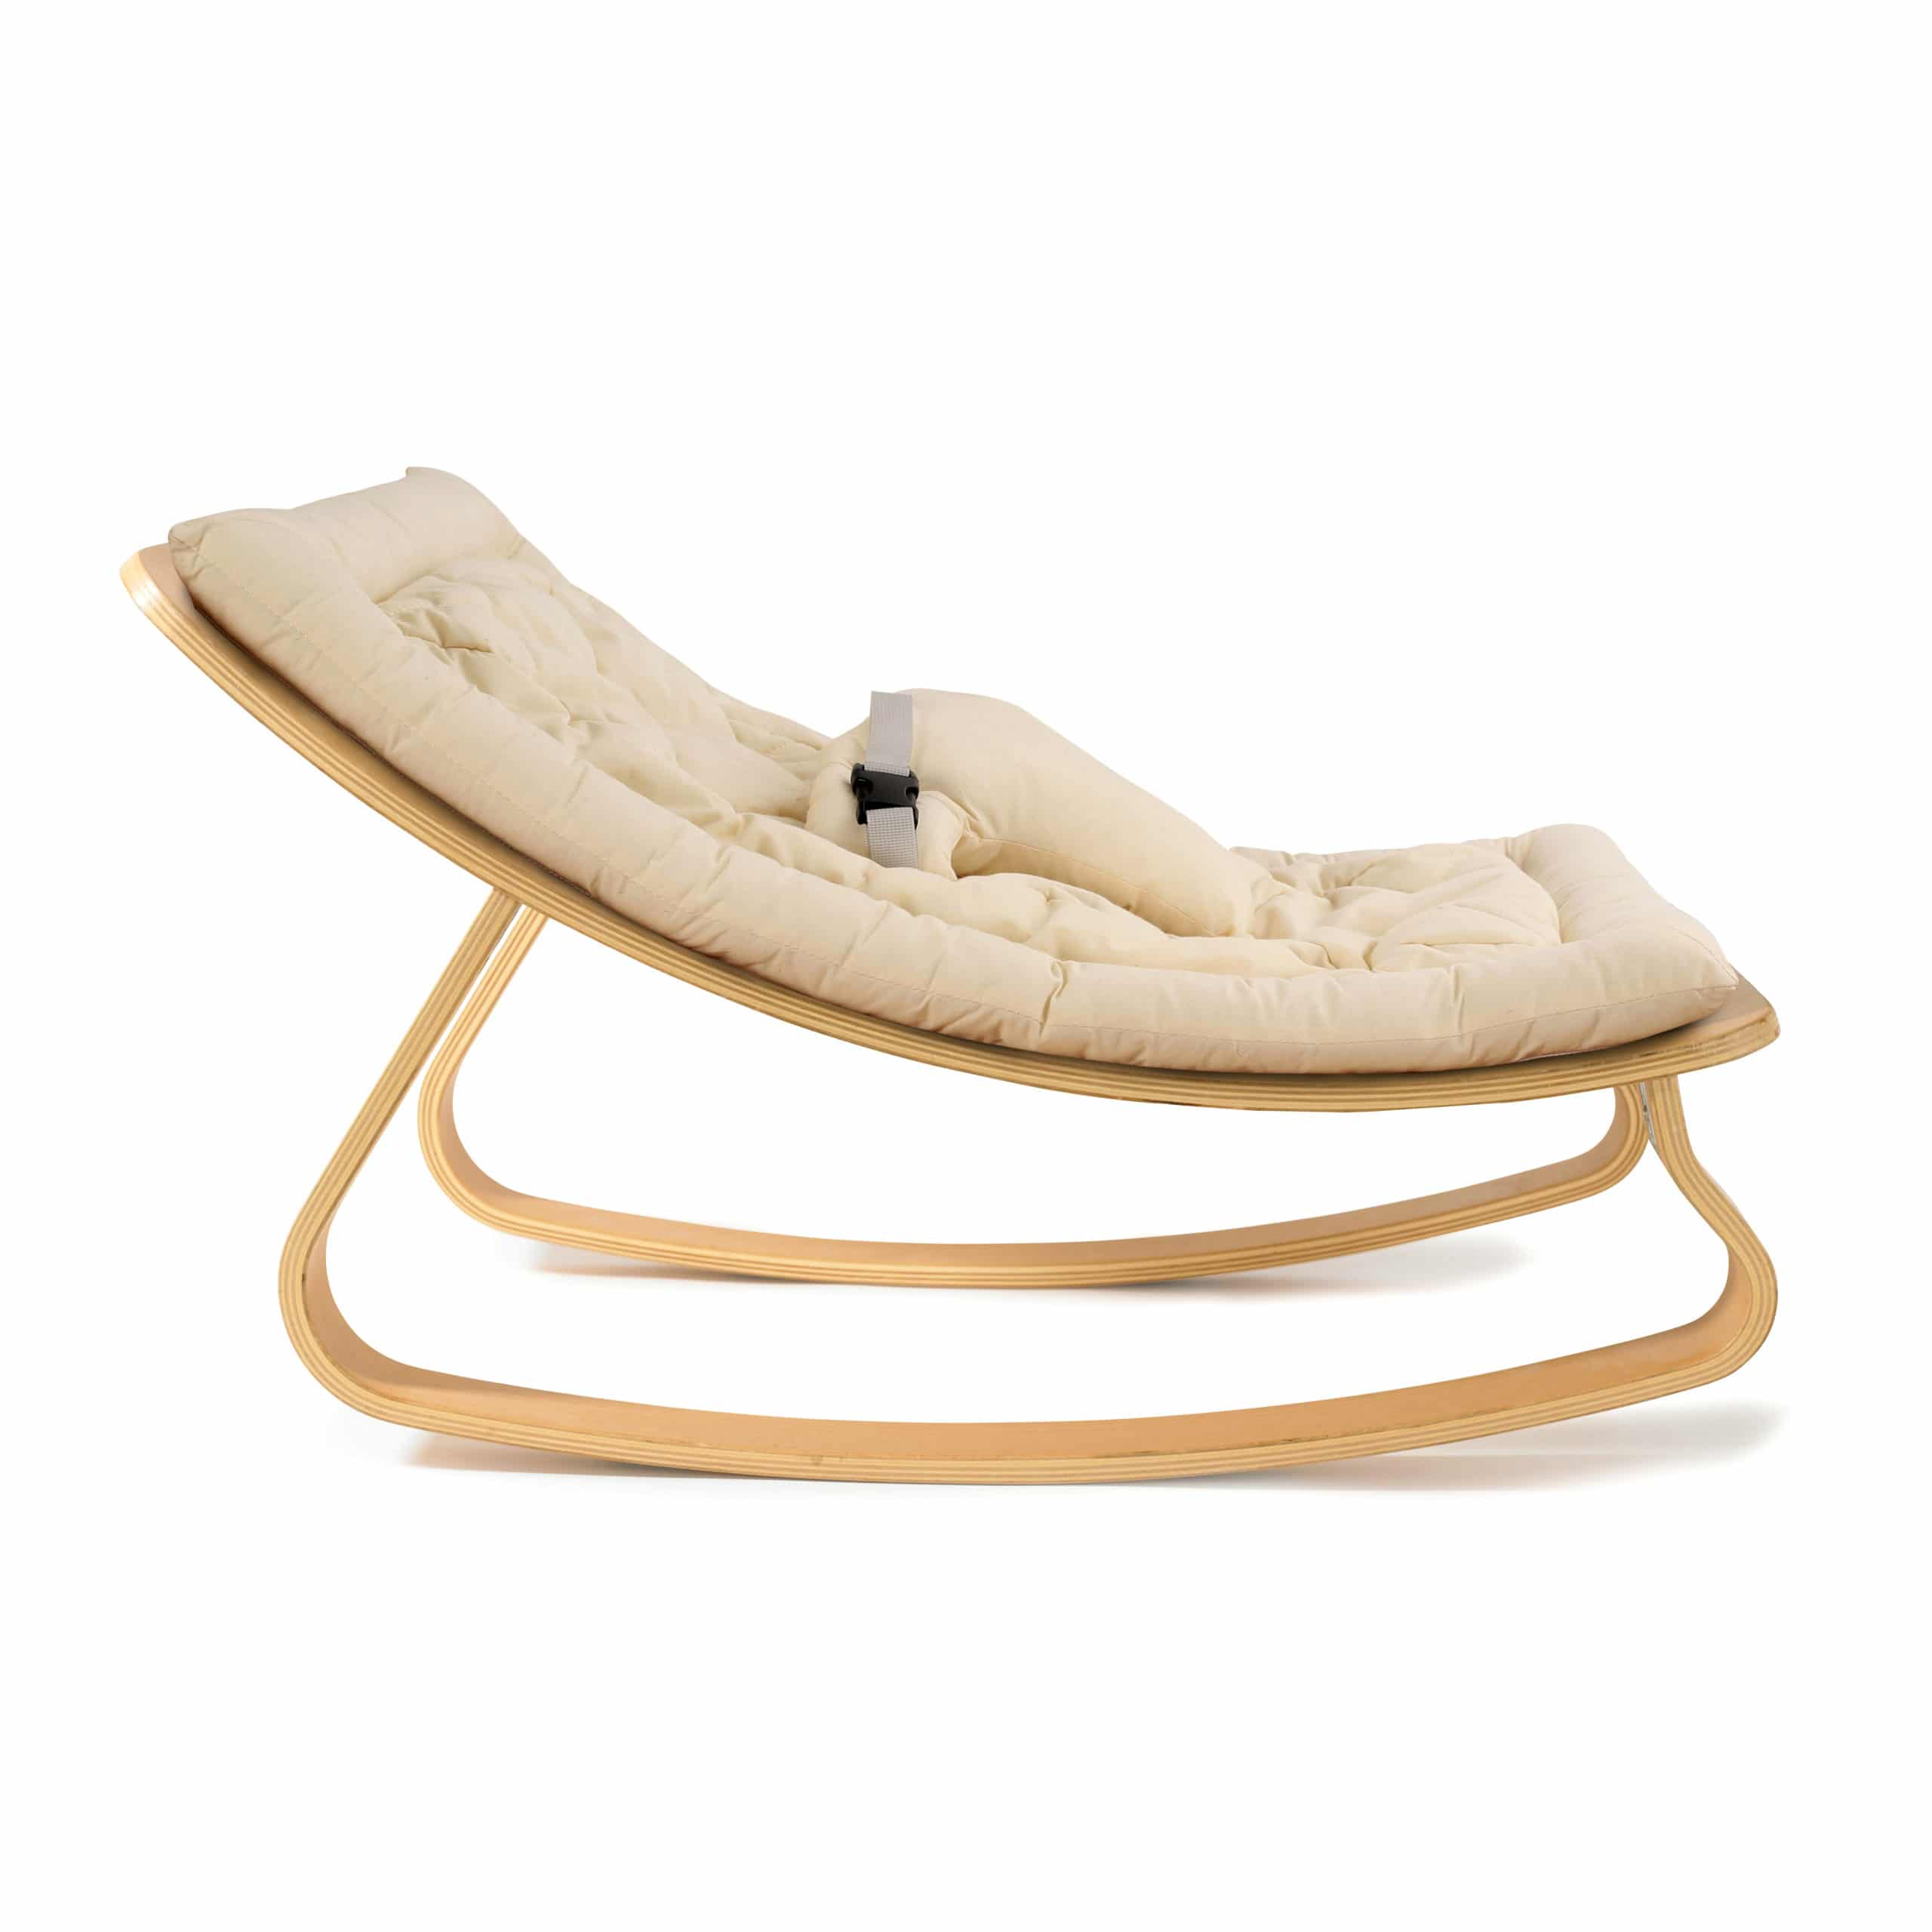 New Baby Rocker Levo With Organic White Cushion